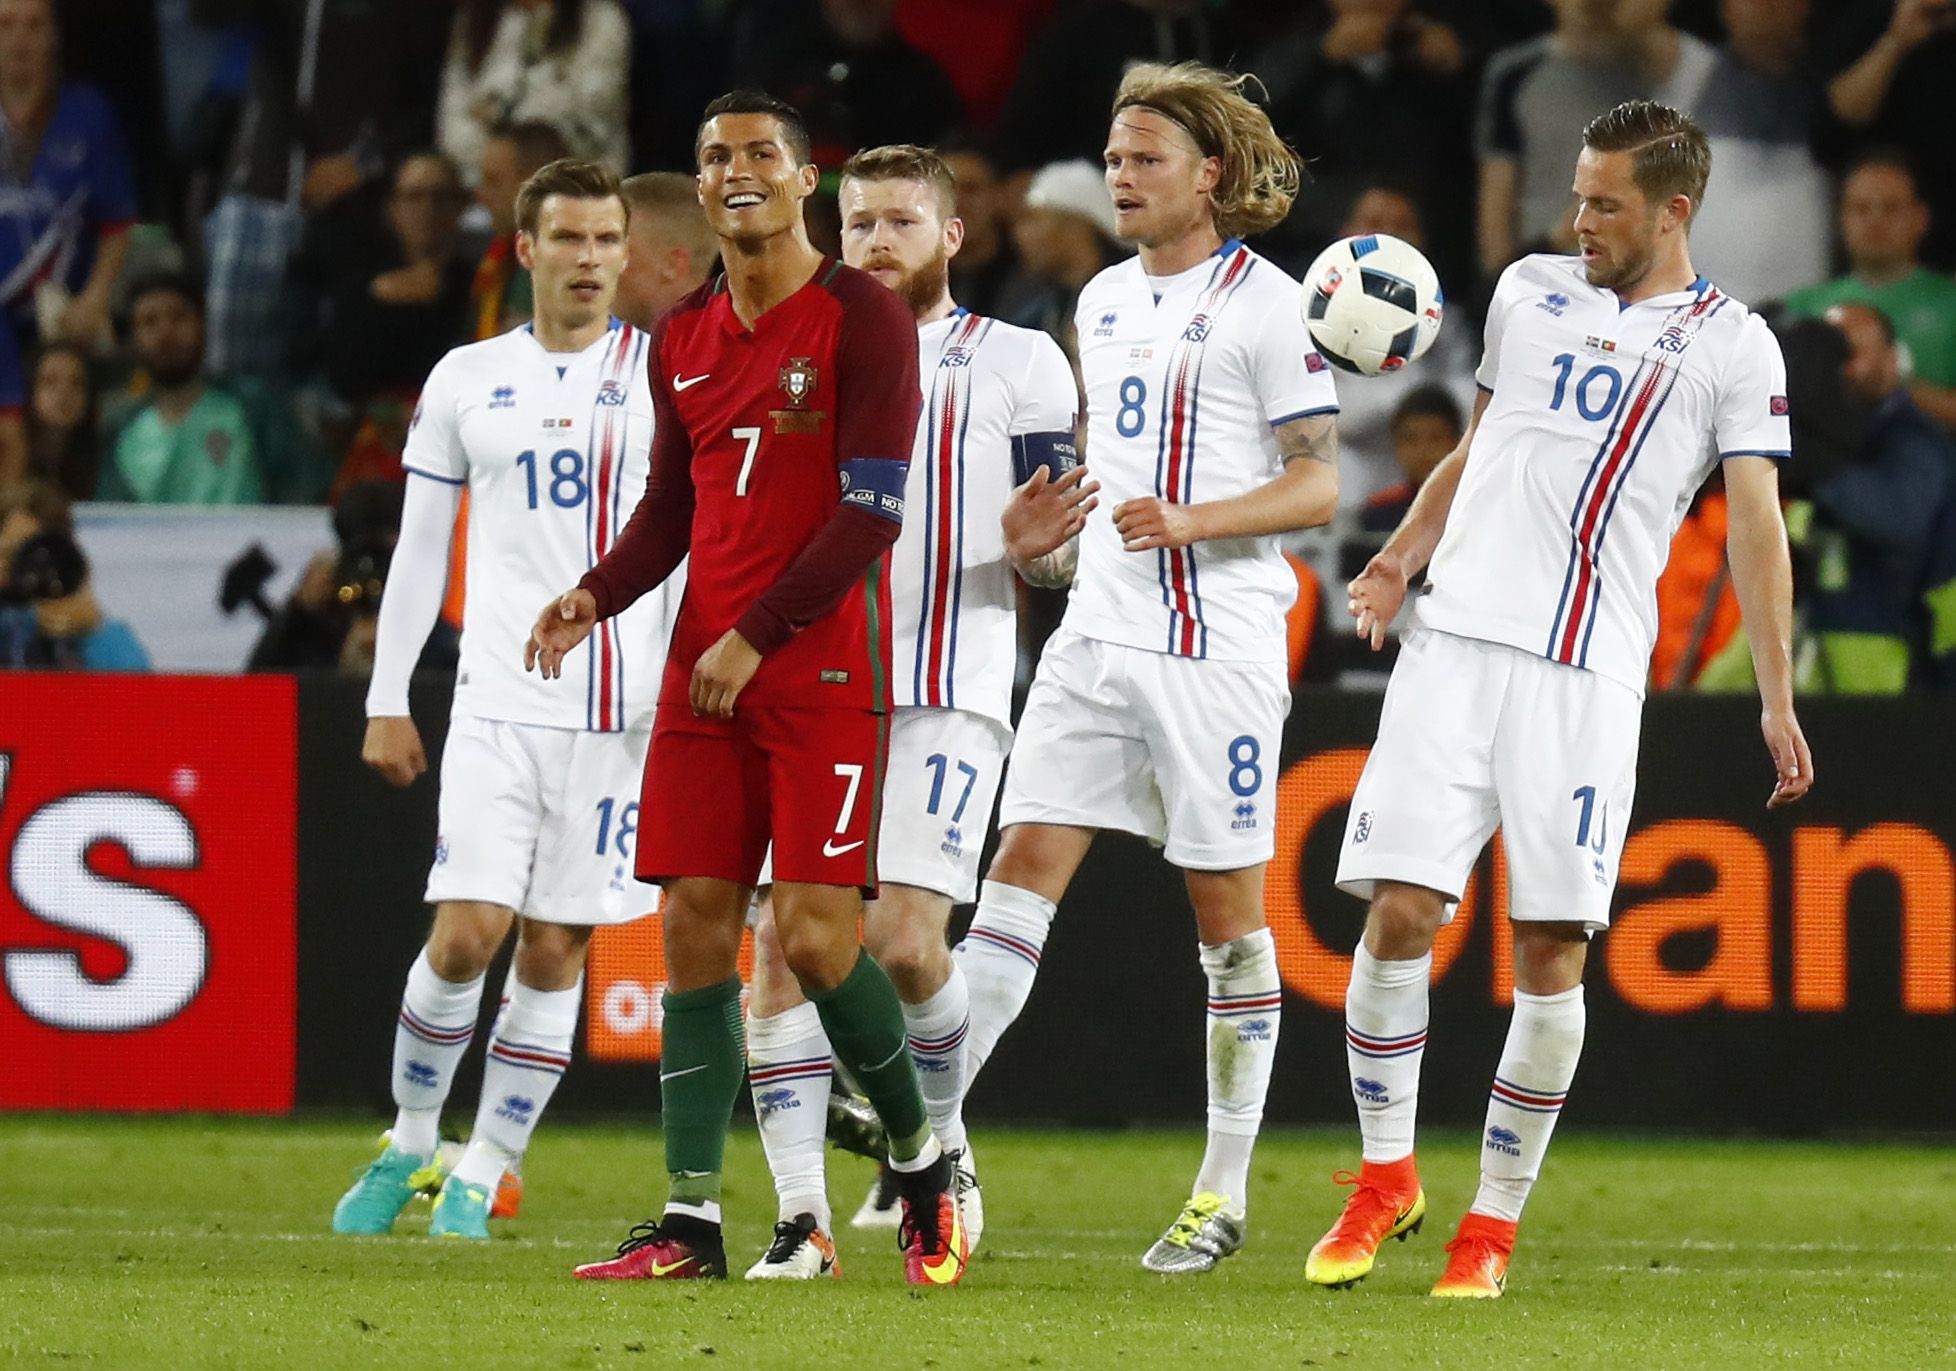 Euro 2016: Debutants Iceland hold Portugal to shock draw